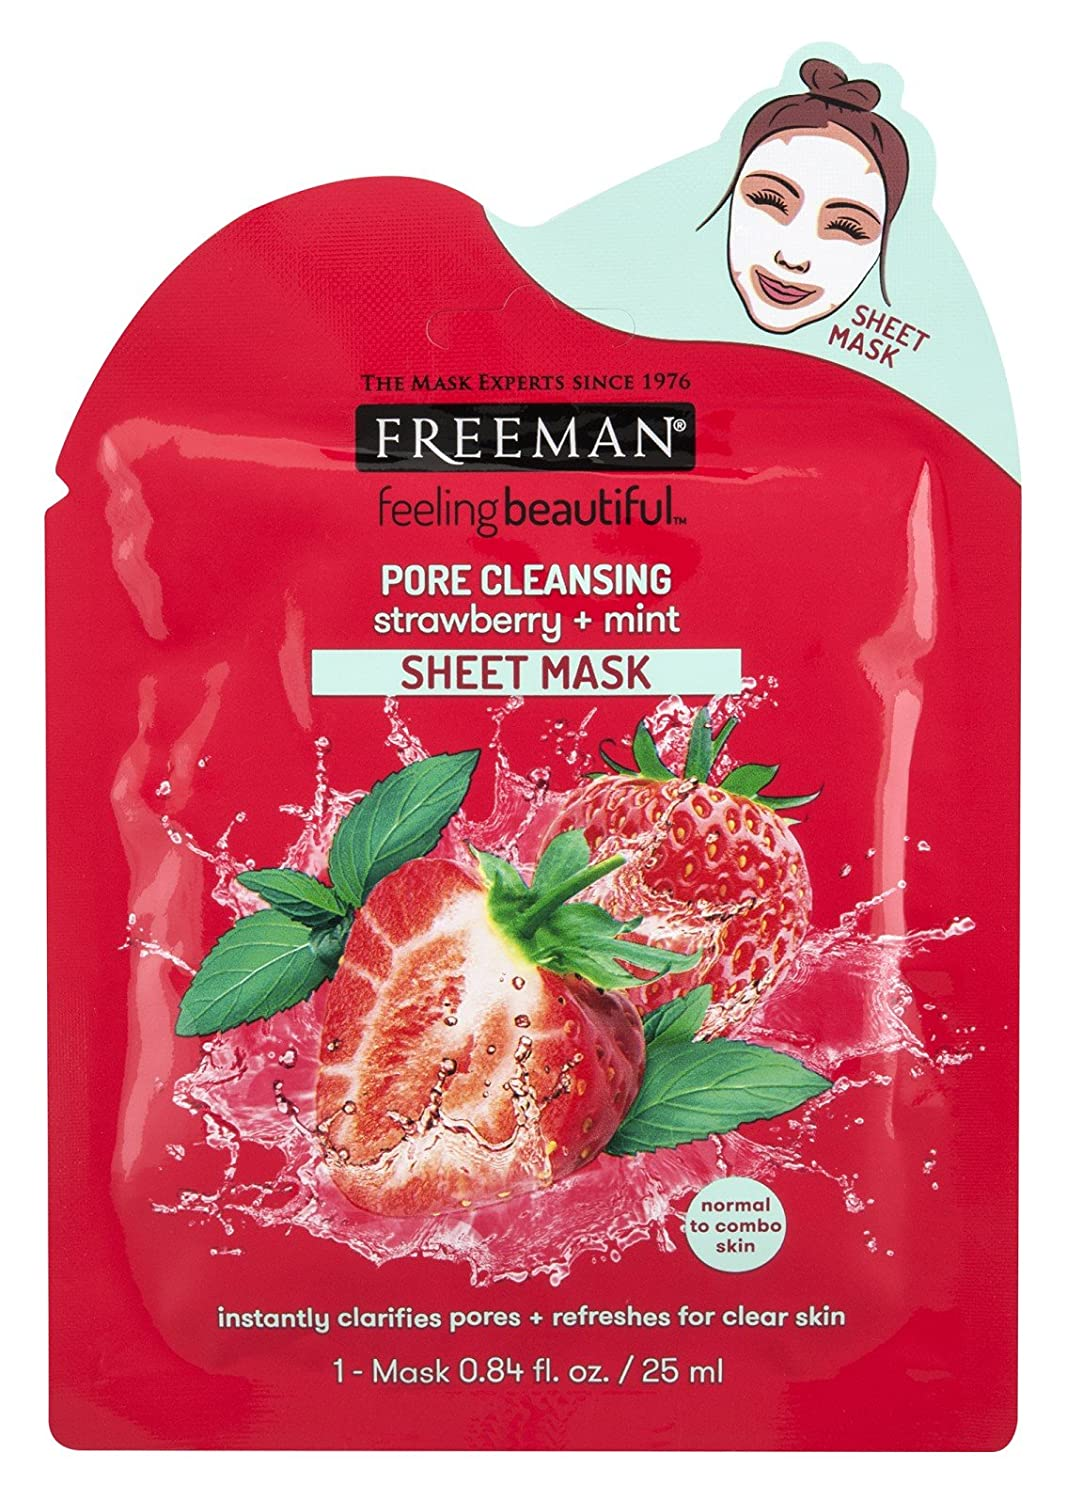 Freeman Facial Strawberry+Mint Pore Cleansing Sheet Mask (6 Pieces)